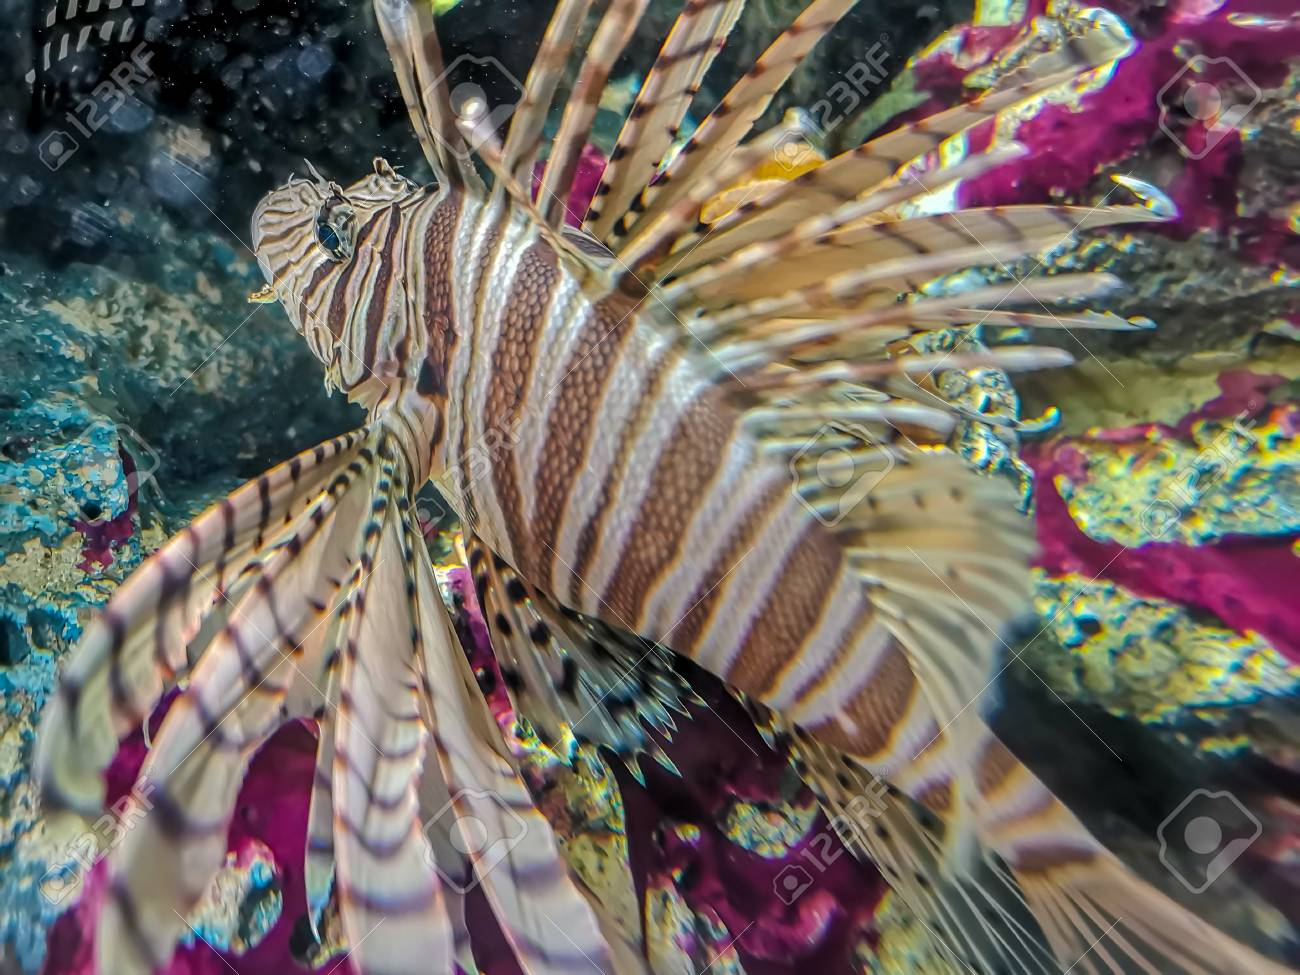 Tropical fish lionfish diving under sea water - 105621708